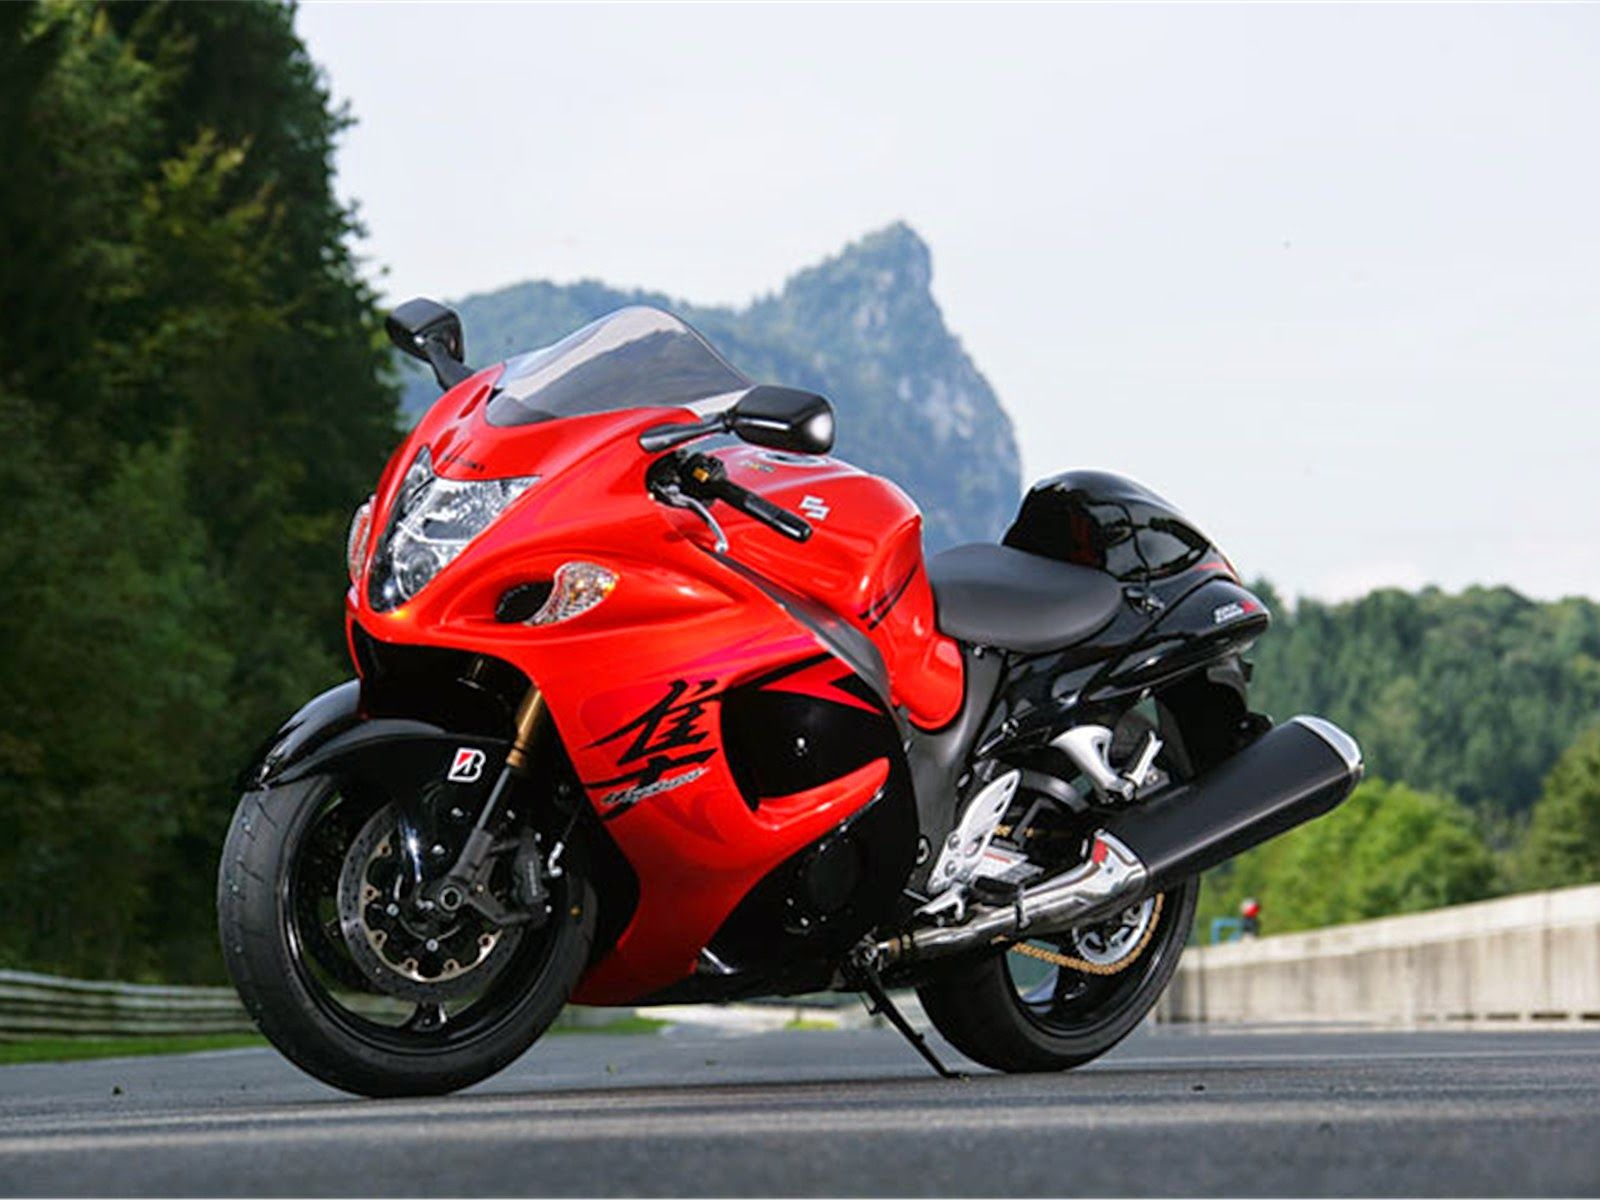 Suzuki Hayabusa Top 10 HD Wallpapers Specification Price | Bike